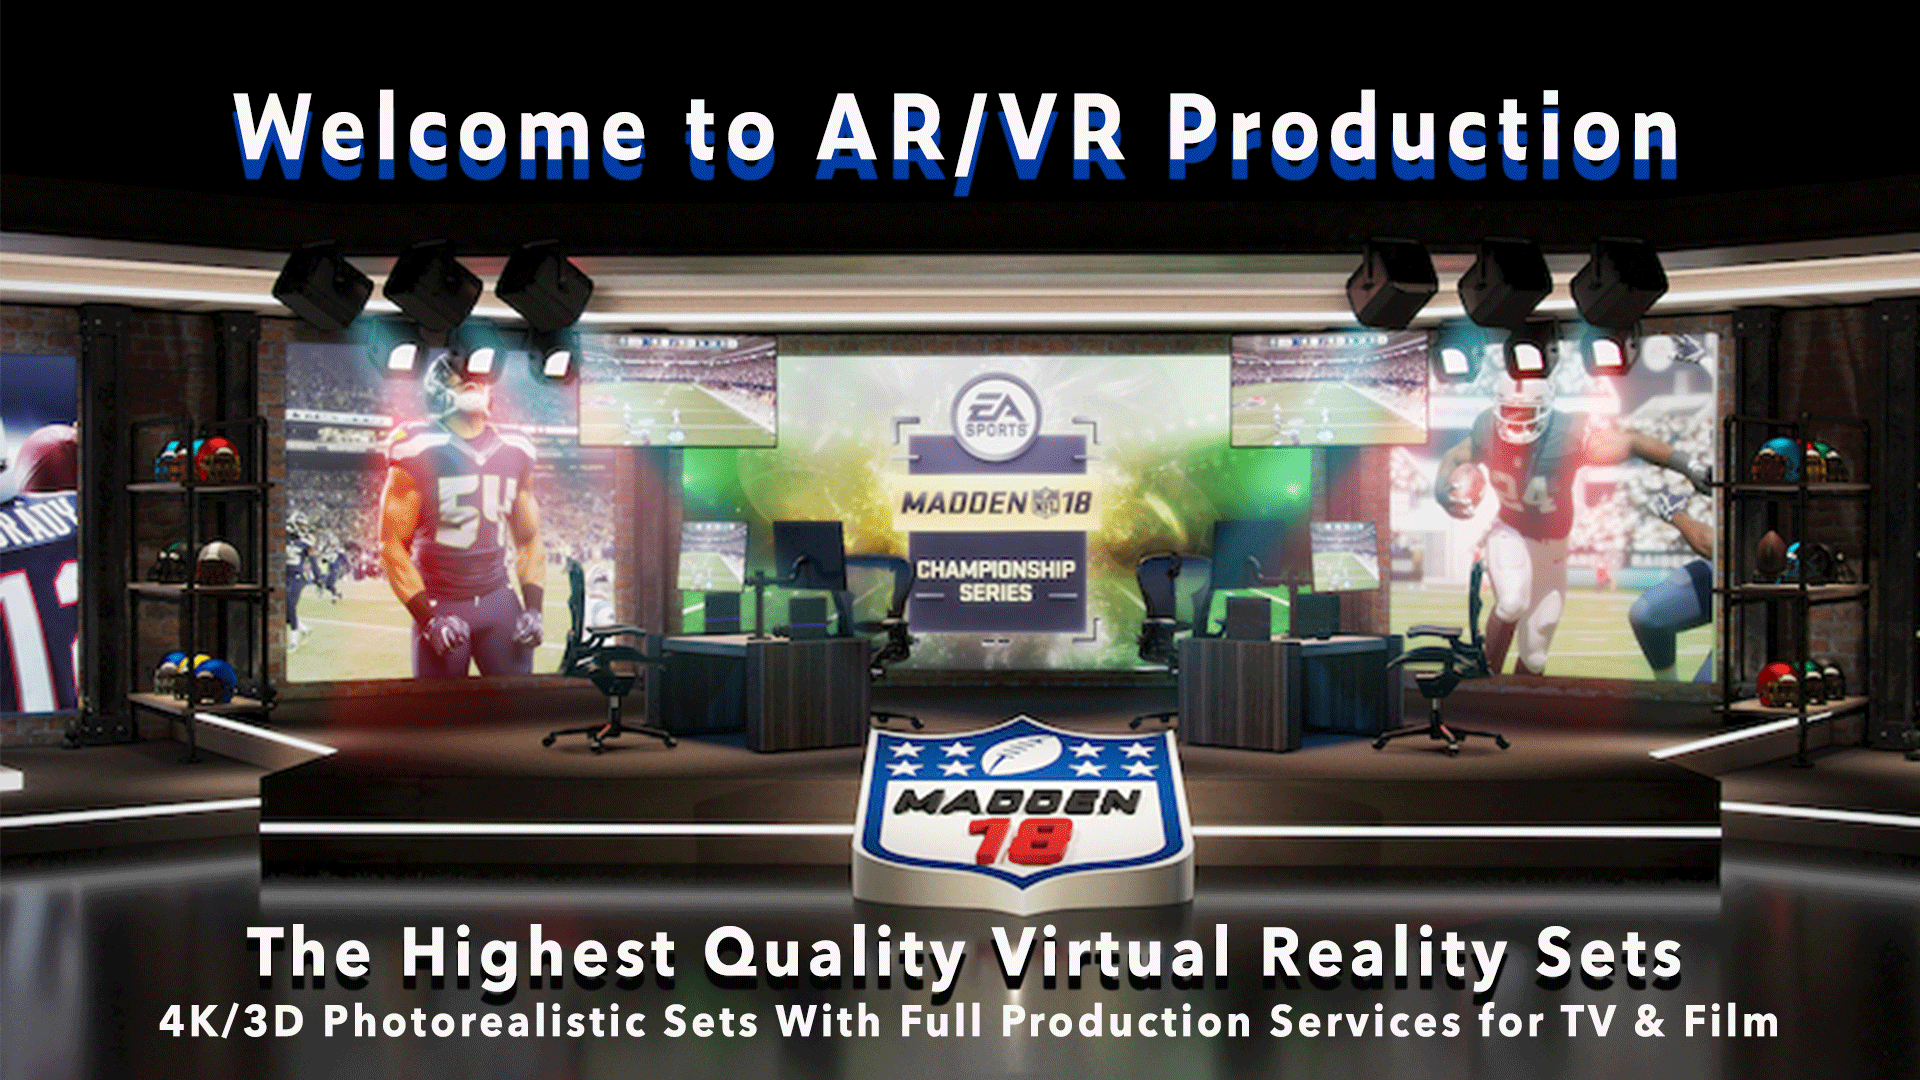 AR/VR Production